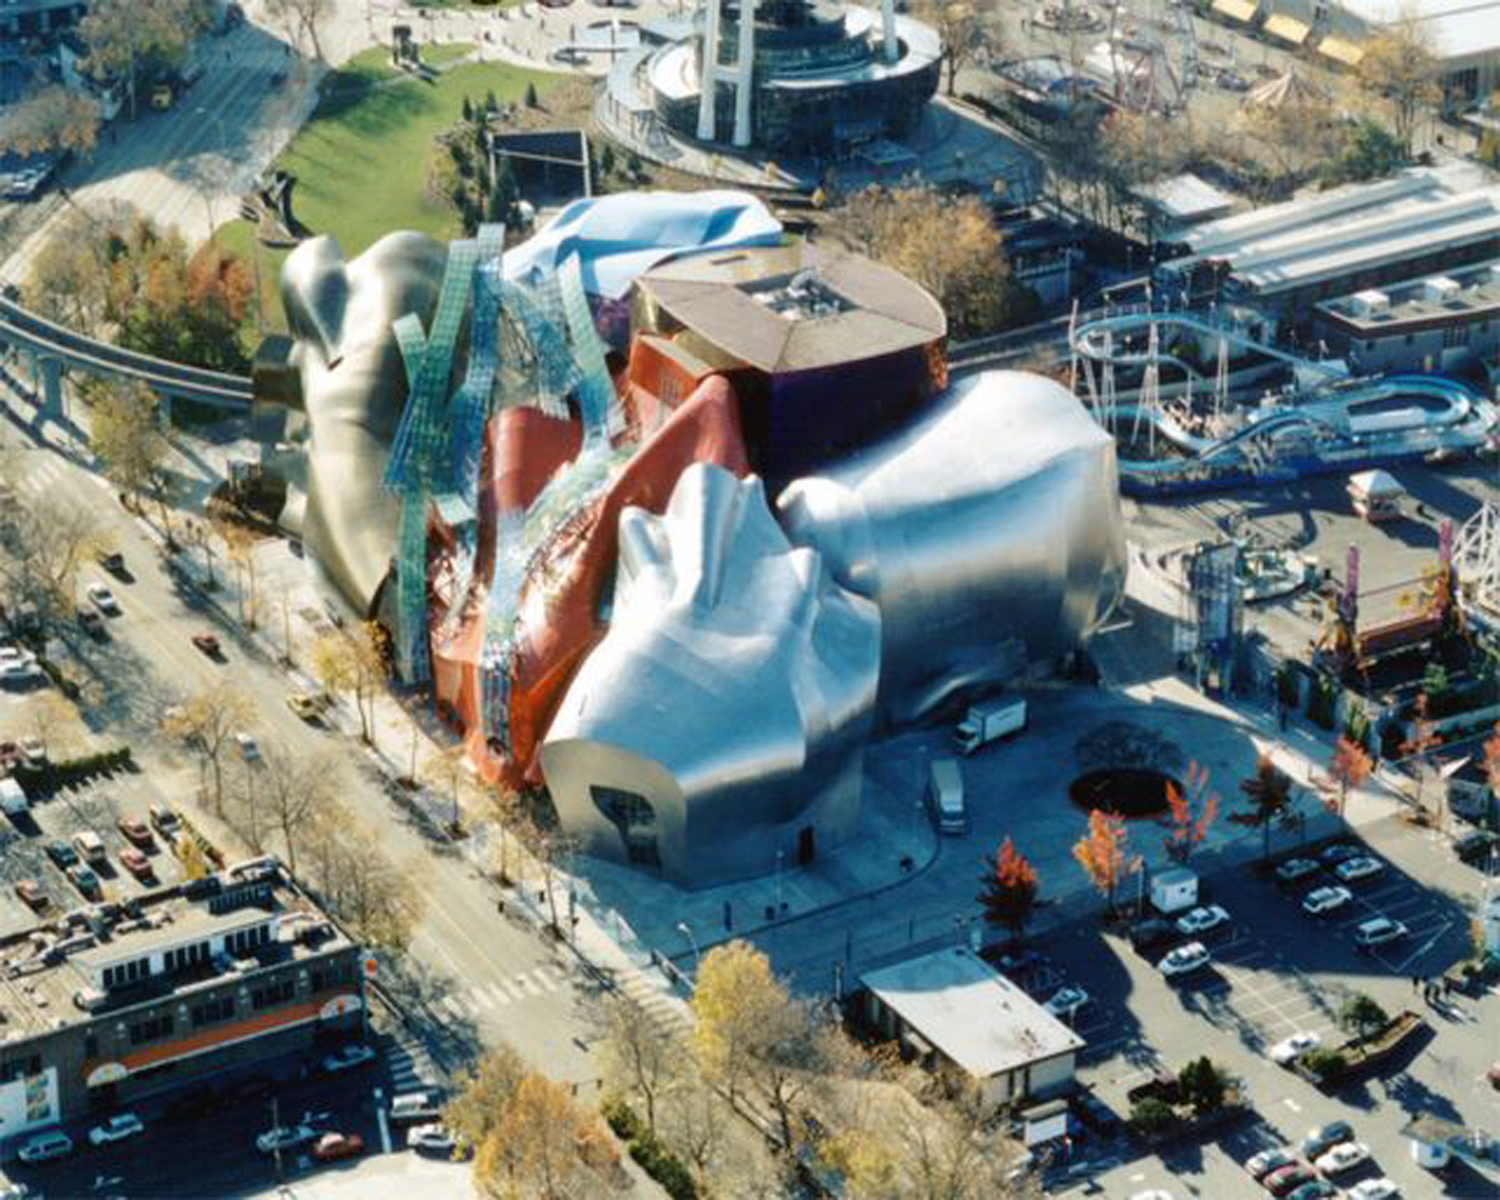 Experience Music Project on frank o gehry